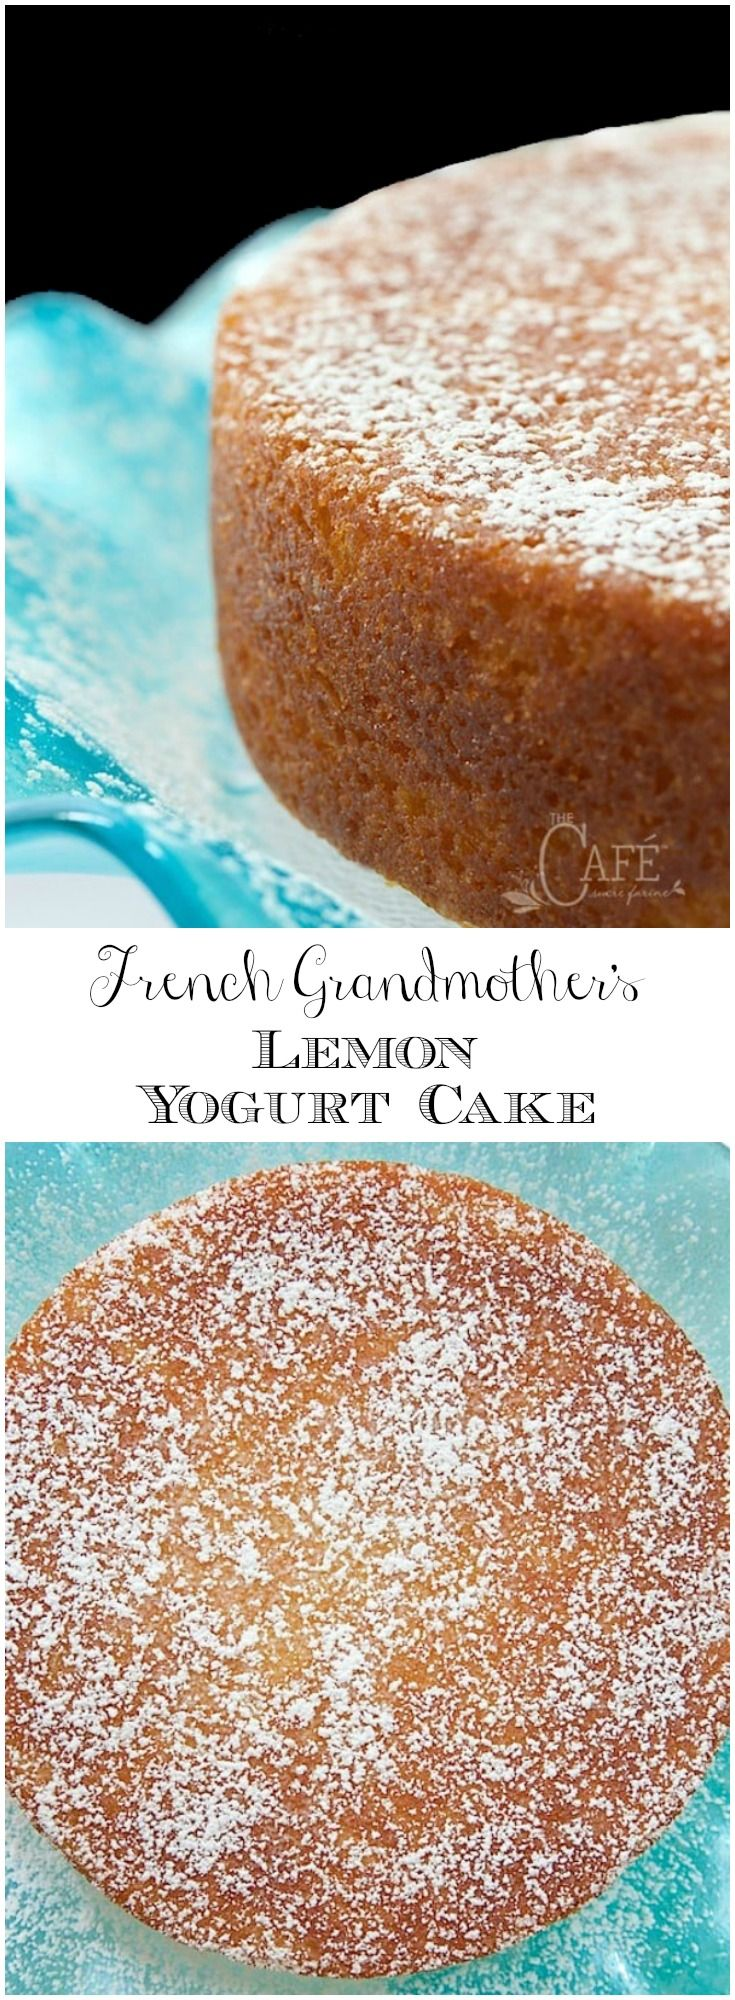 This fabulous French Grandmother's Lemon Yogurt Cake has a really fun history. It's also moist, super delicious and can be thrown together in minutes!